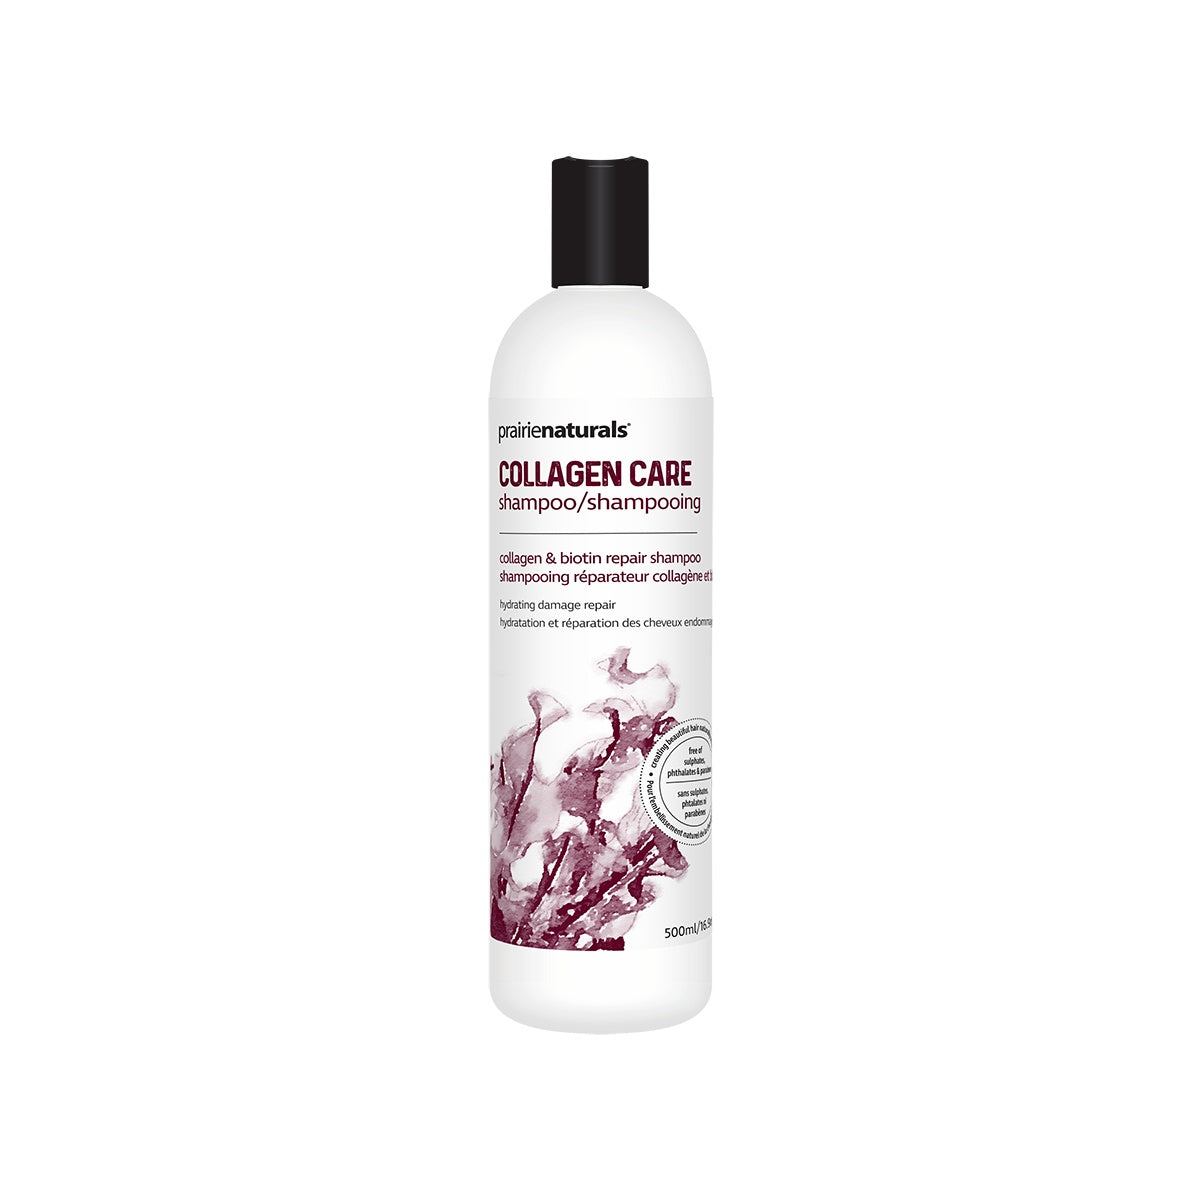 Personal Care - Prairie Naturals - Collagen Care Marine Collagen & Biotin Repair Shampoo, 500ml